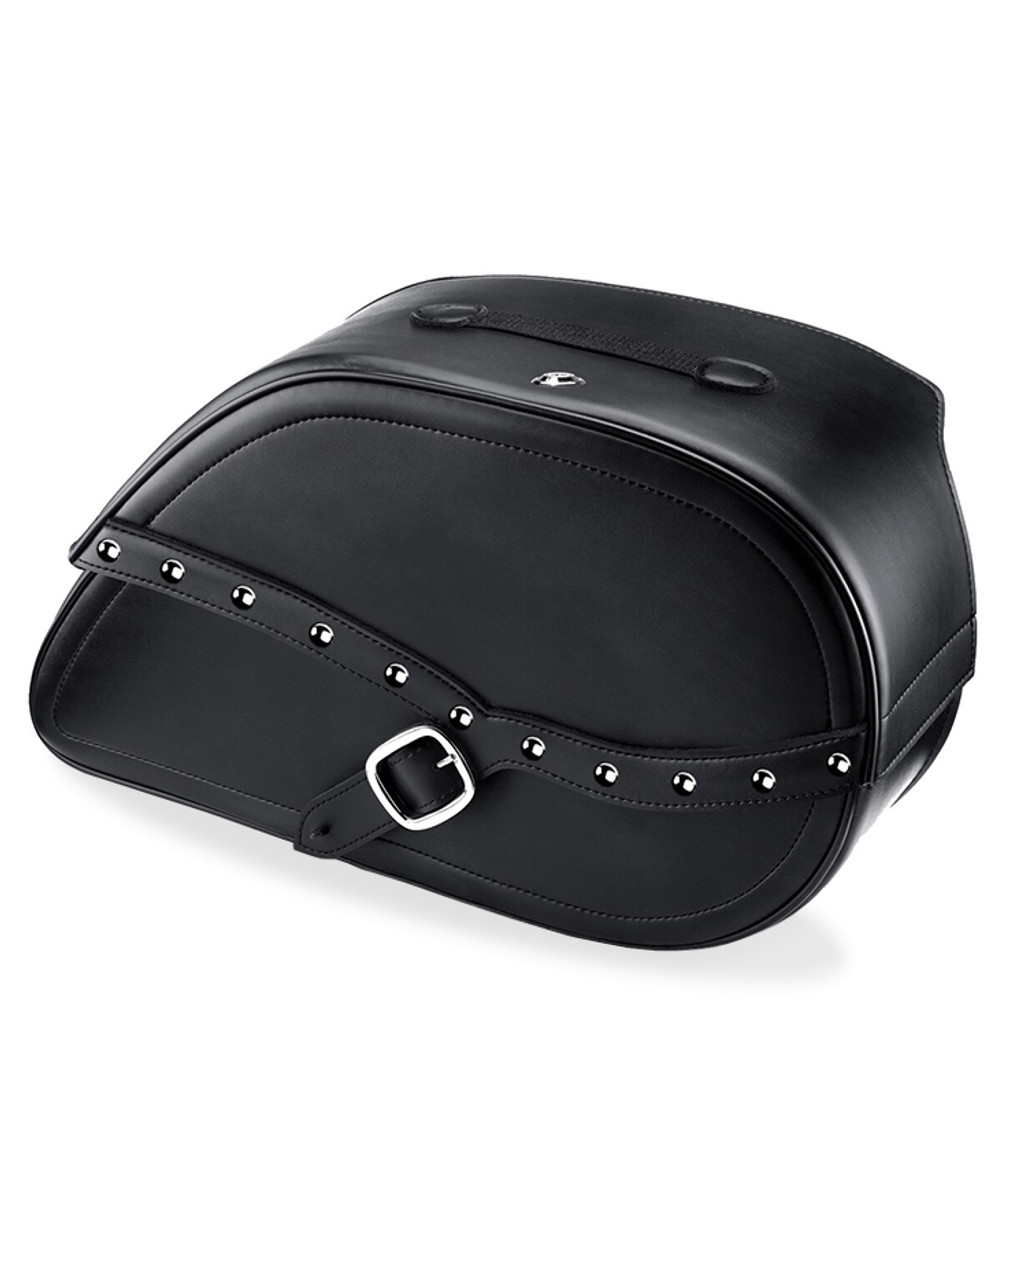 Viking Armor Shock Cutout Studded Large Motorcycle Saddlebags For Harley Dyna Switchback Main Bag View